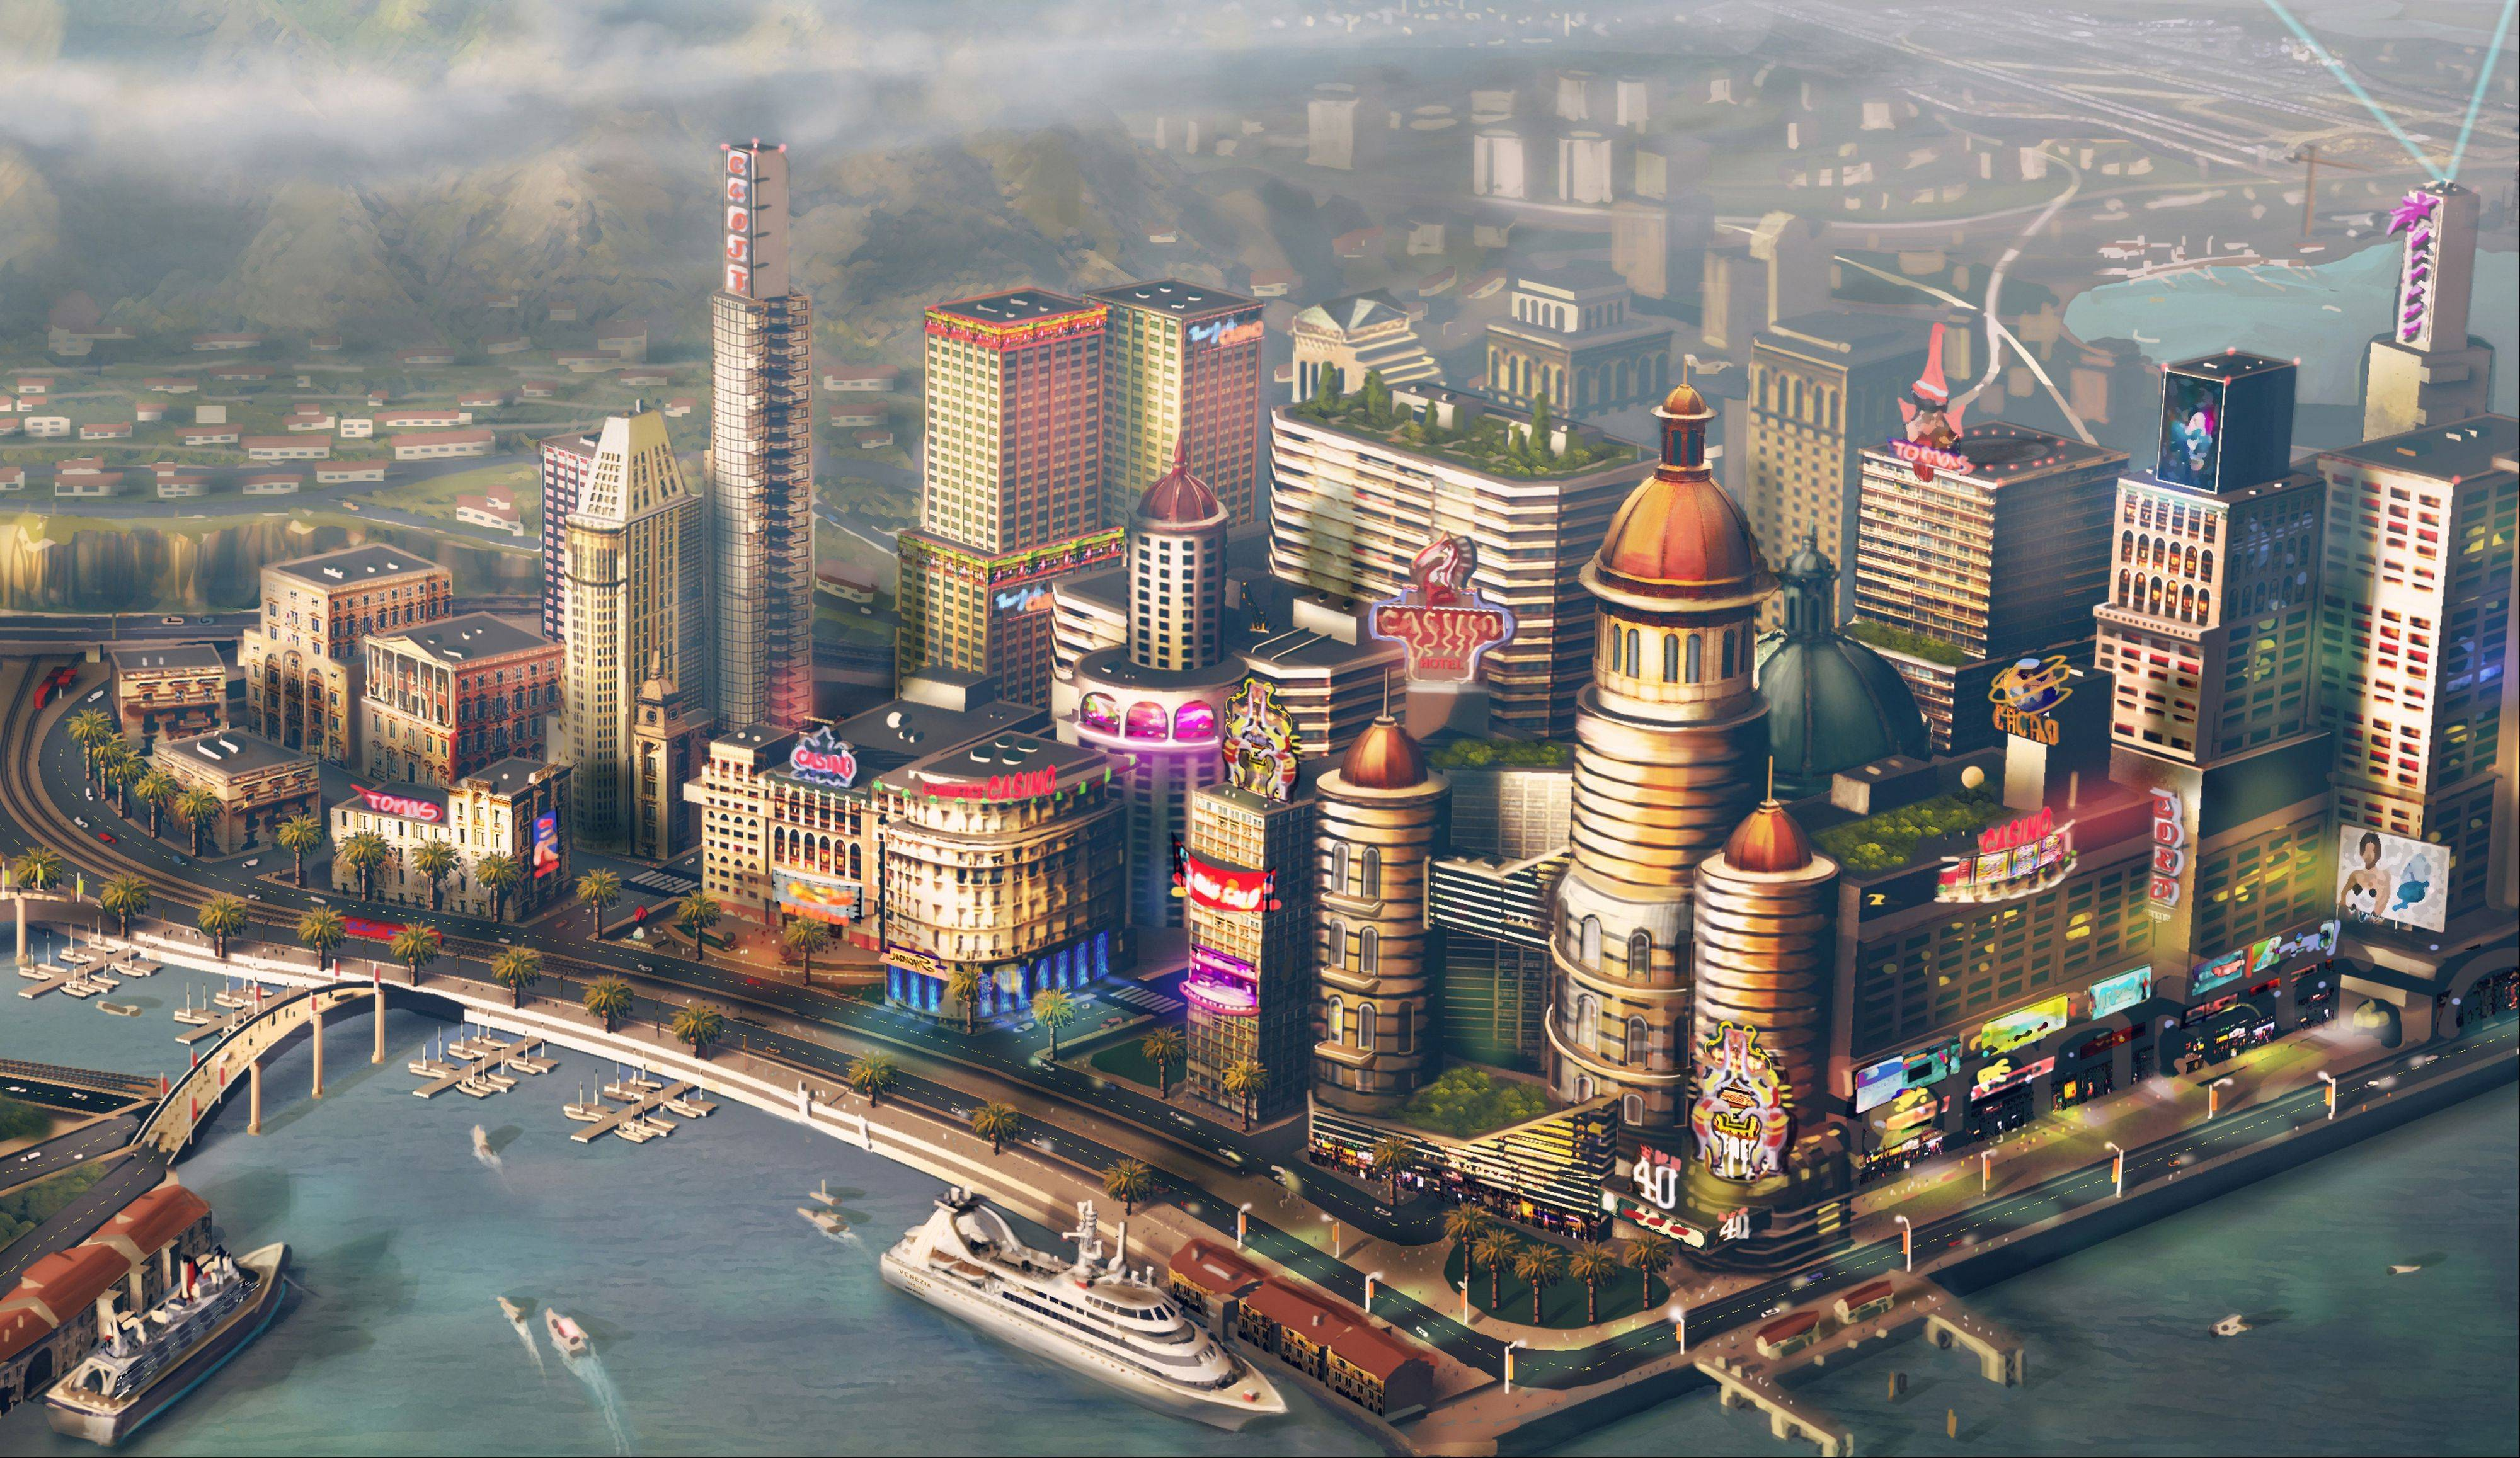 The creators of �SimCity� are hoping players don�t move on after connectivity issues plagued the game�s launch last week.